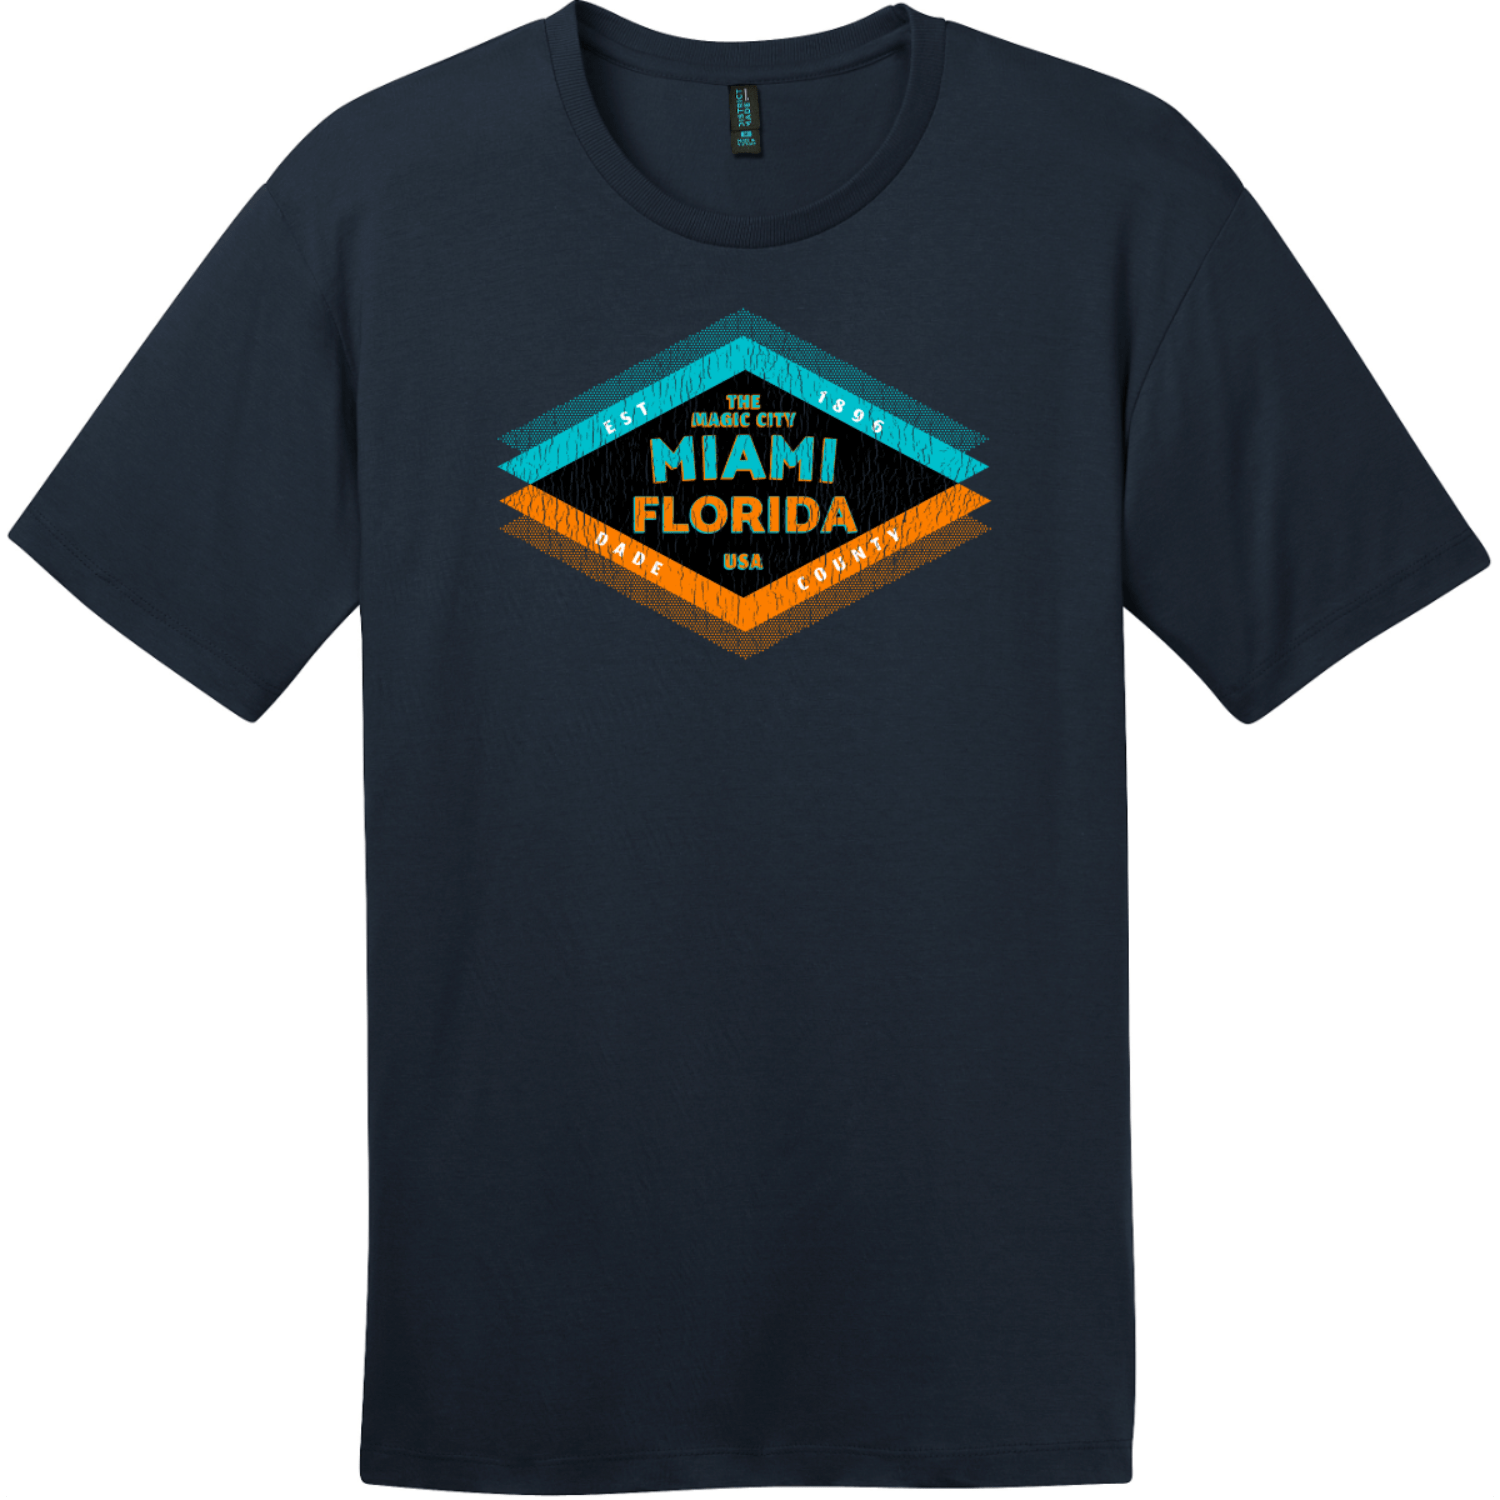 Miami Florida The Magic City T-Shirt New Navy District Perfect Weight Tee DT104